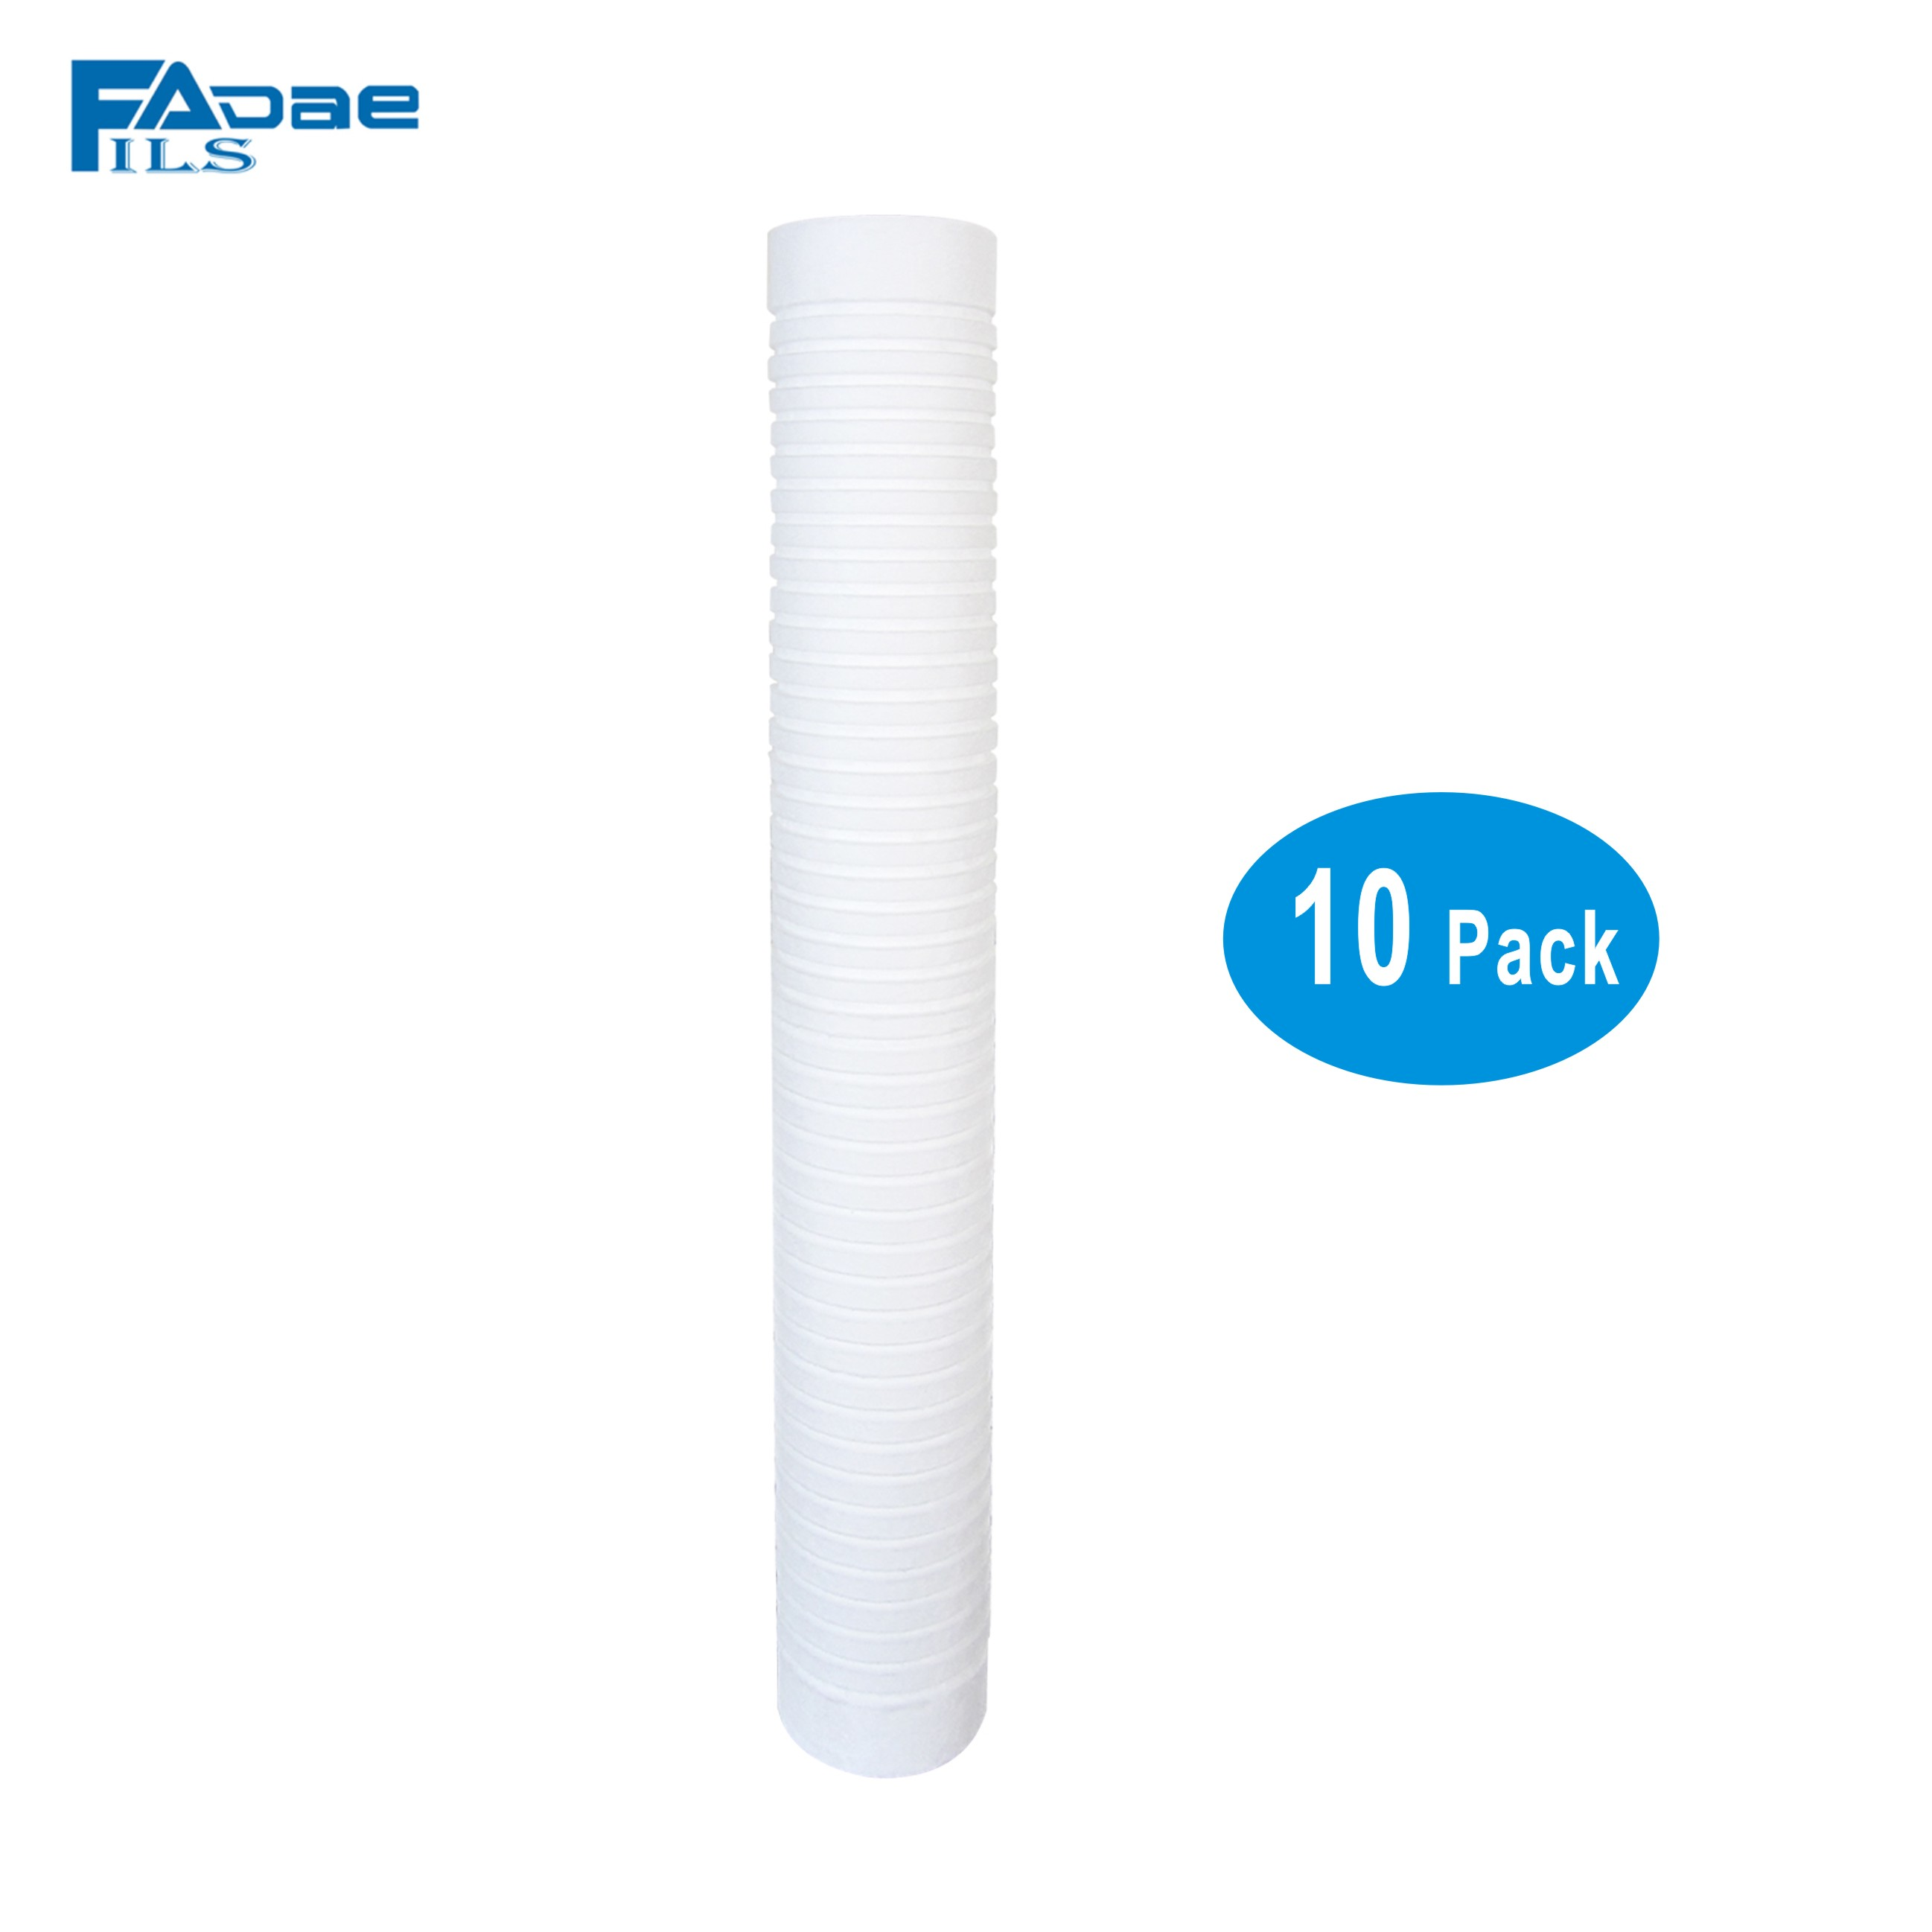 20 in L x 2 1 2 OD Sediment PP Grooved Filter 1 Micron 10pcs lot